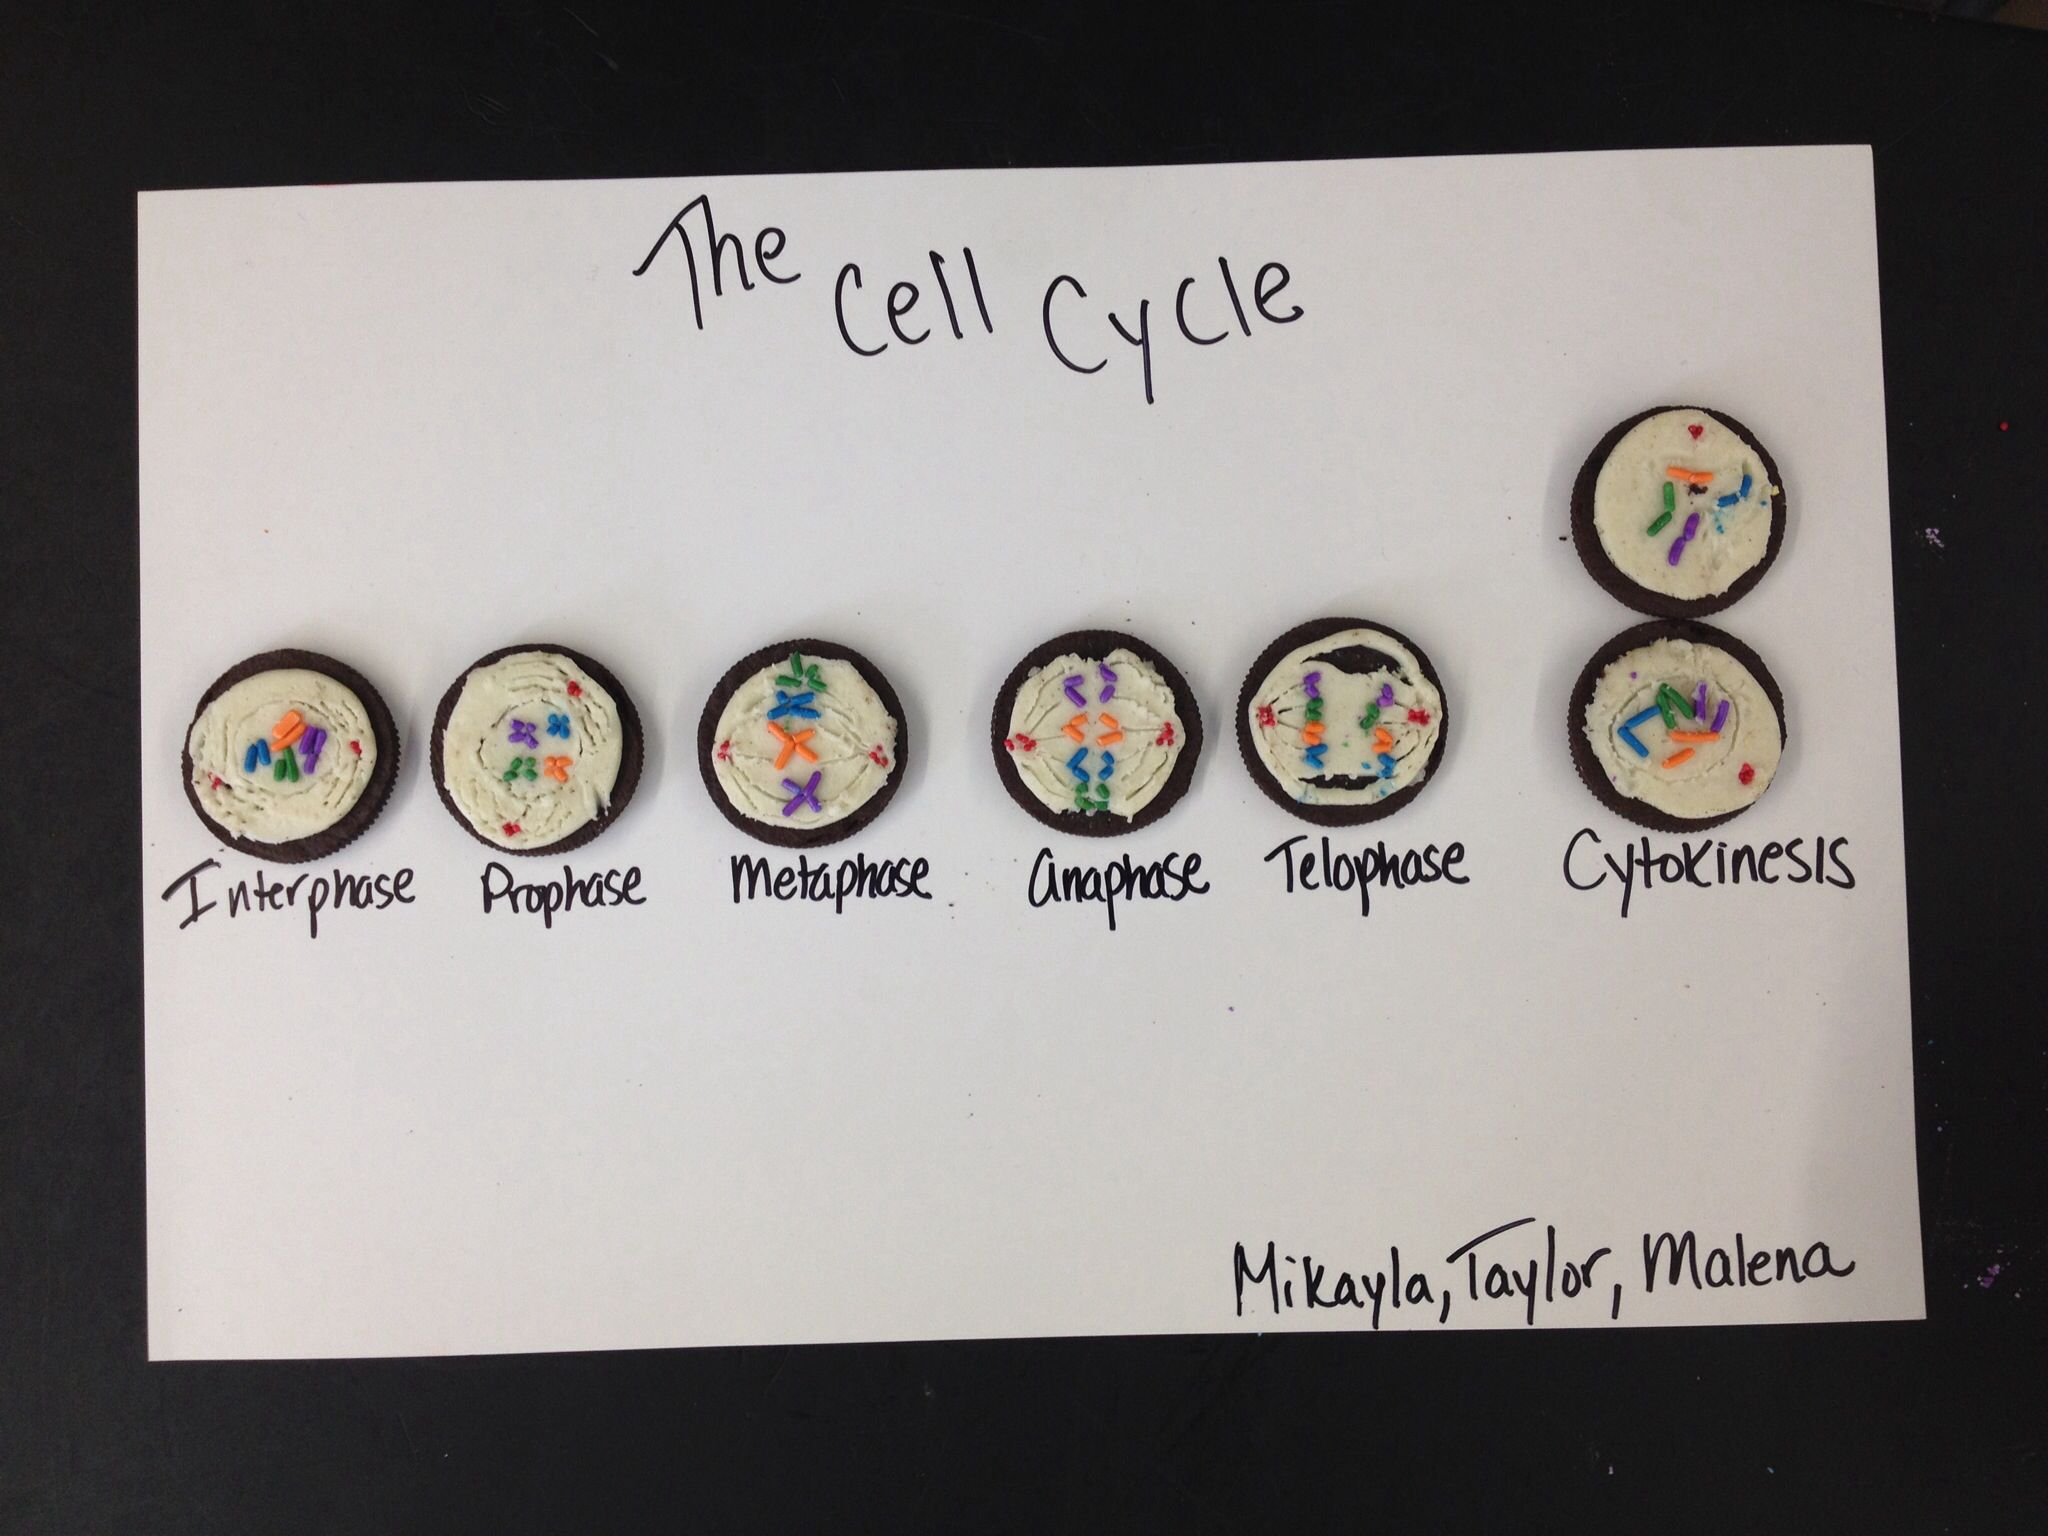 Pin By Dena Ell On School Science Cells Cell Cycle Teaching Biology [ 1536 x 2048 Pixel ]